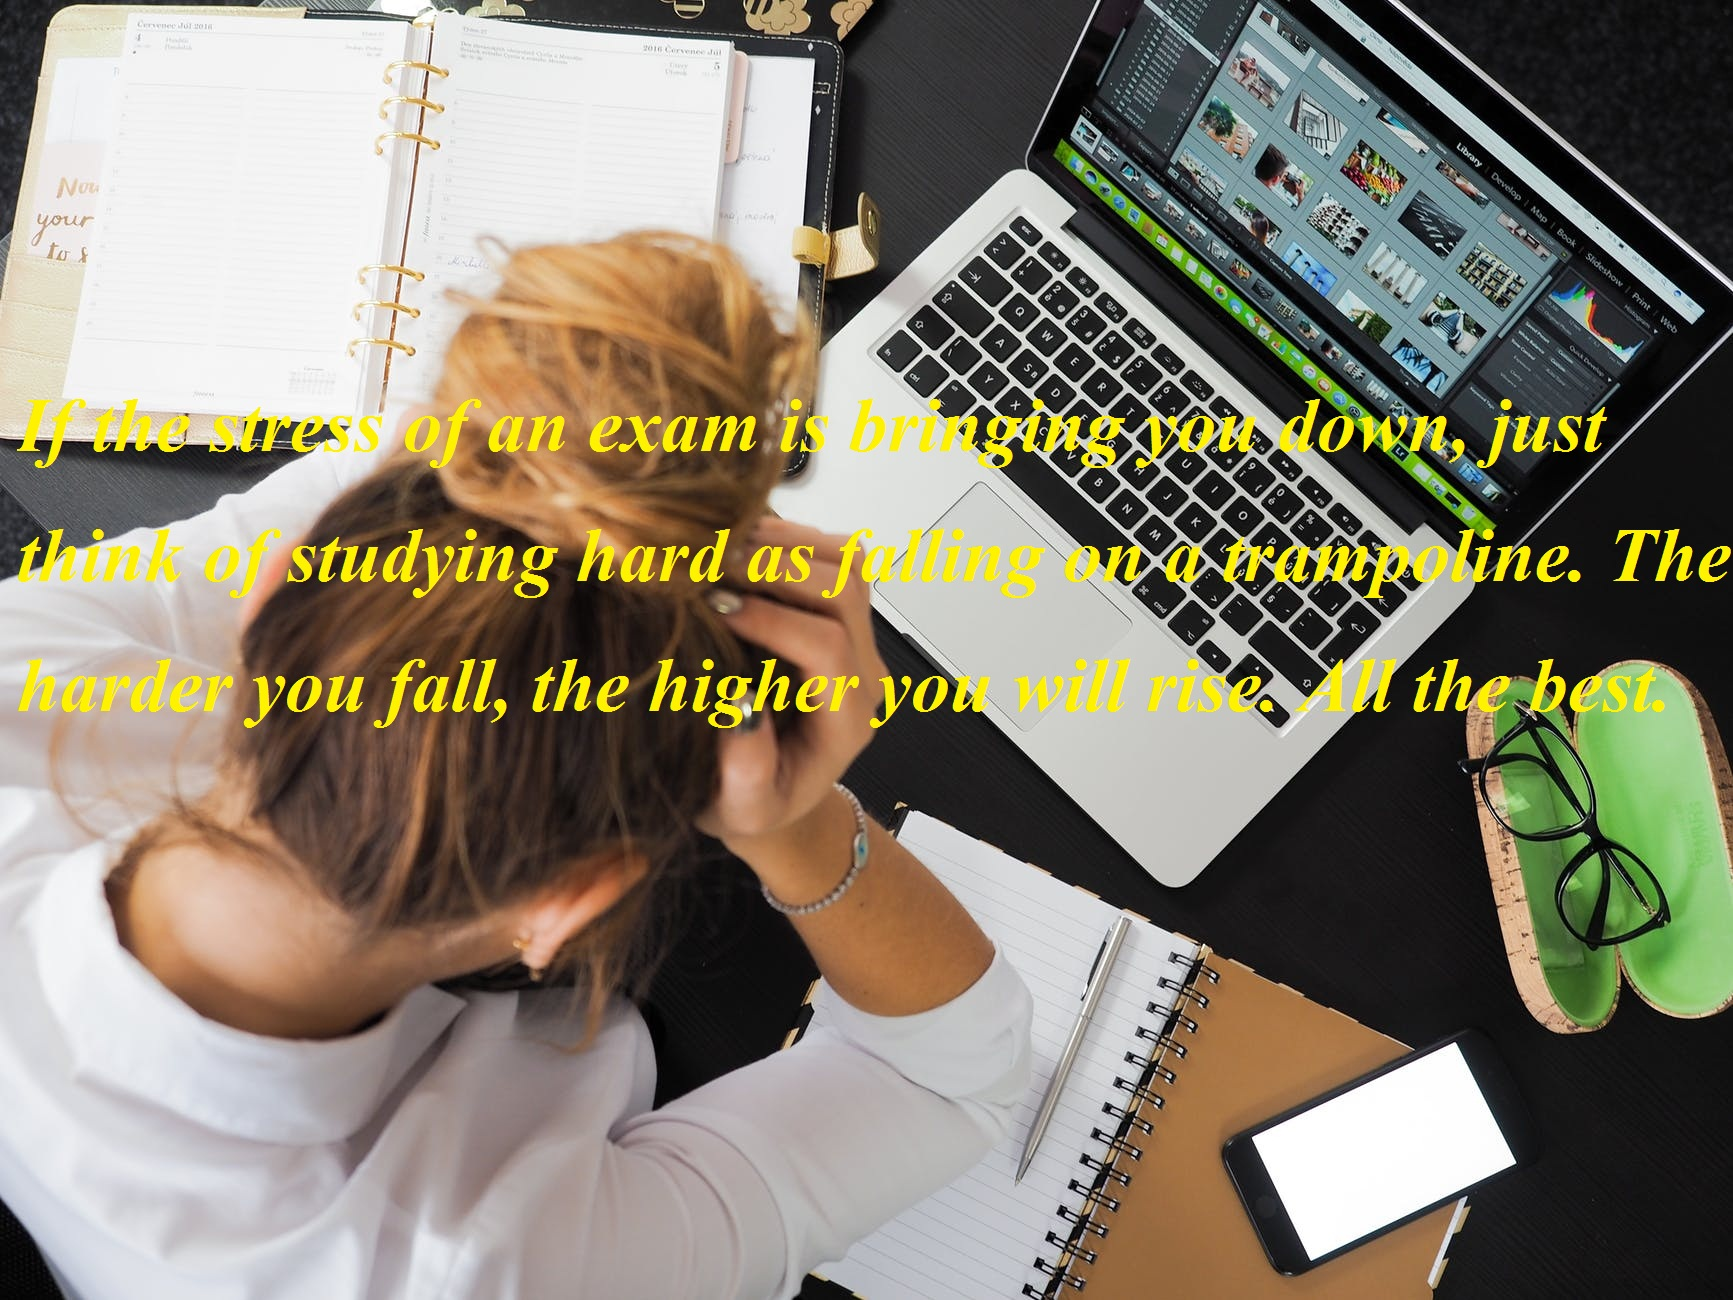 Best Wishes for Exam Messages